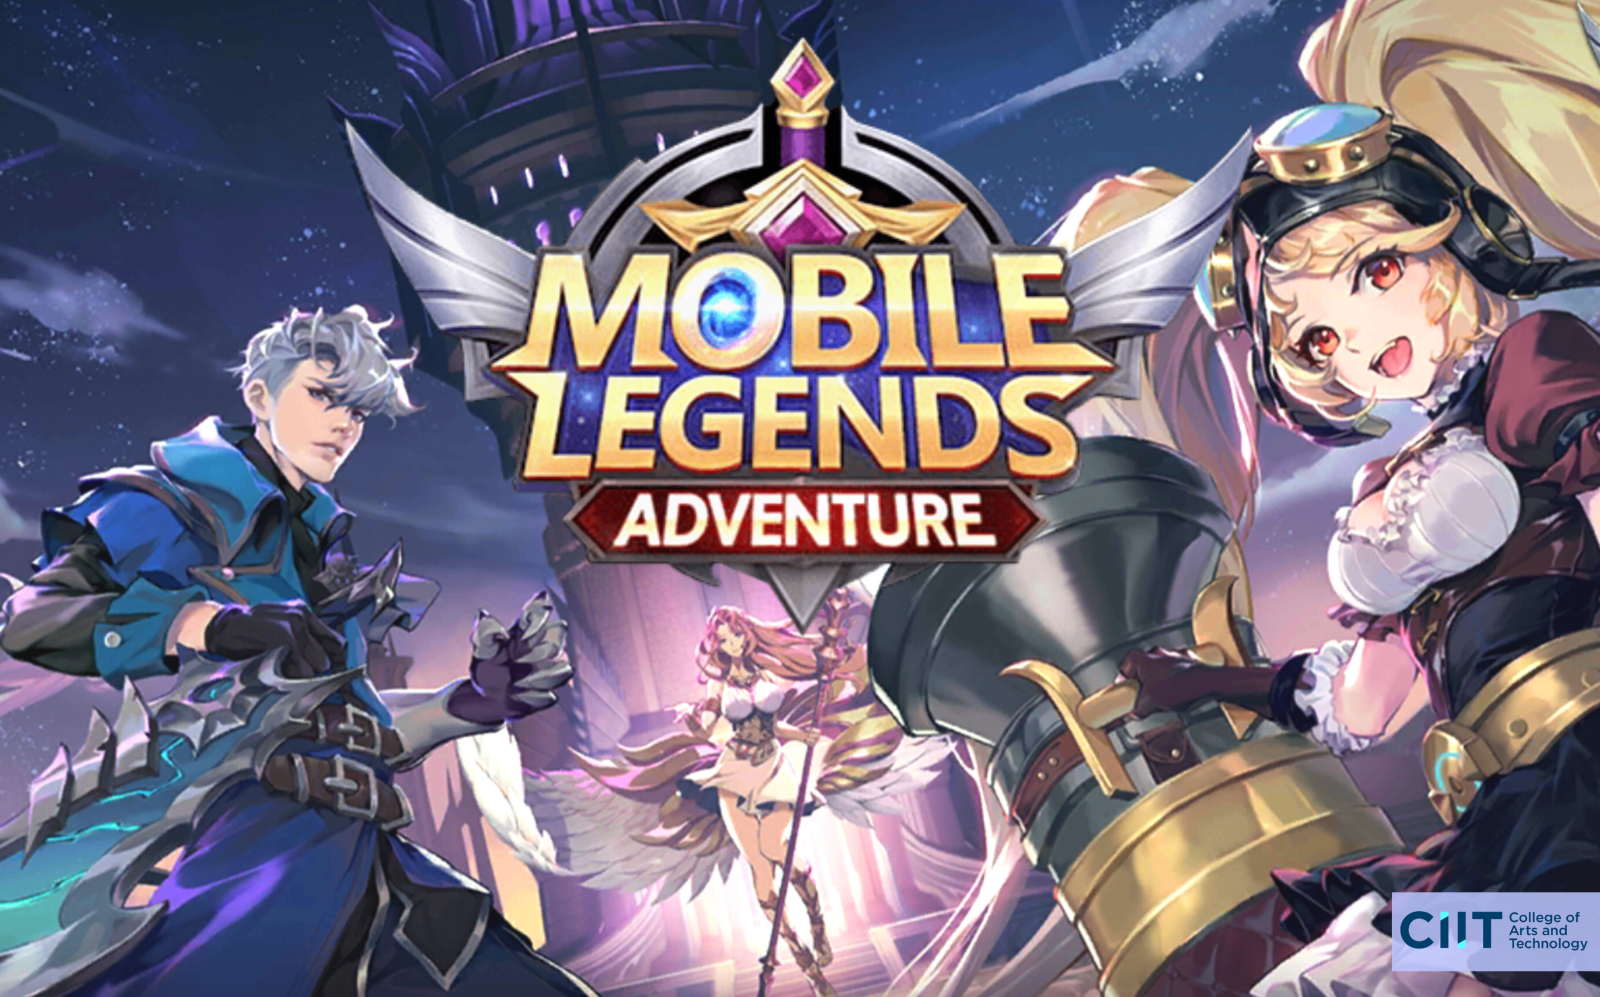 New Mobile Legends Game from Moonton: Mobile Legends: Adventure